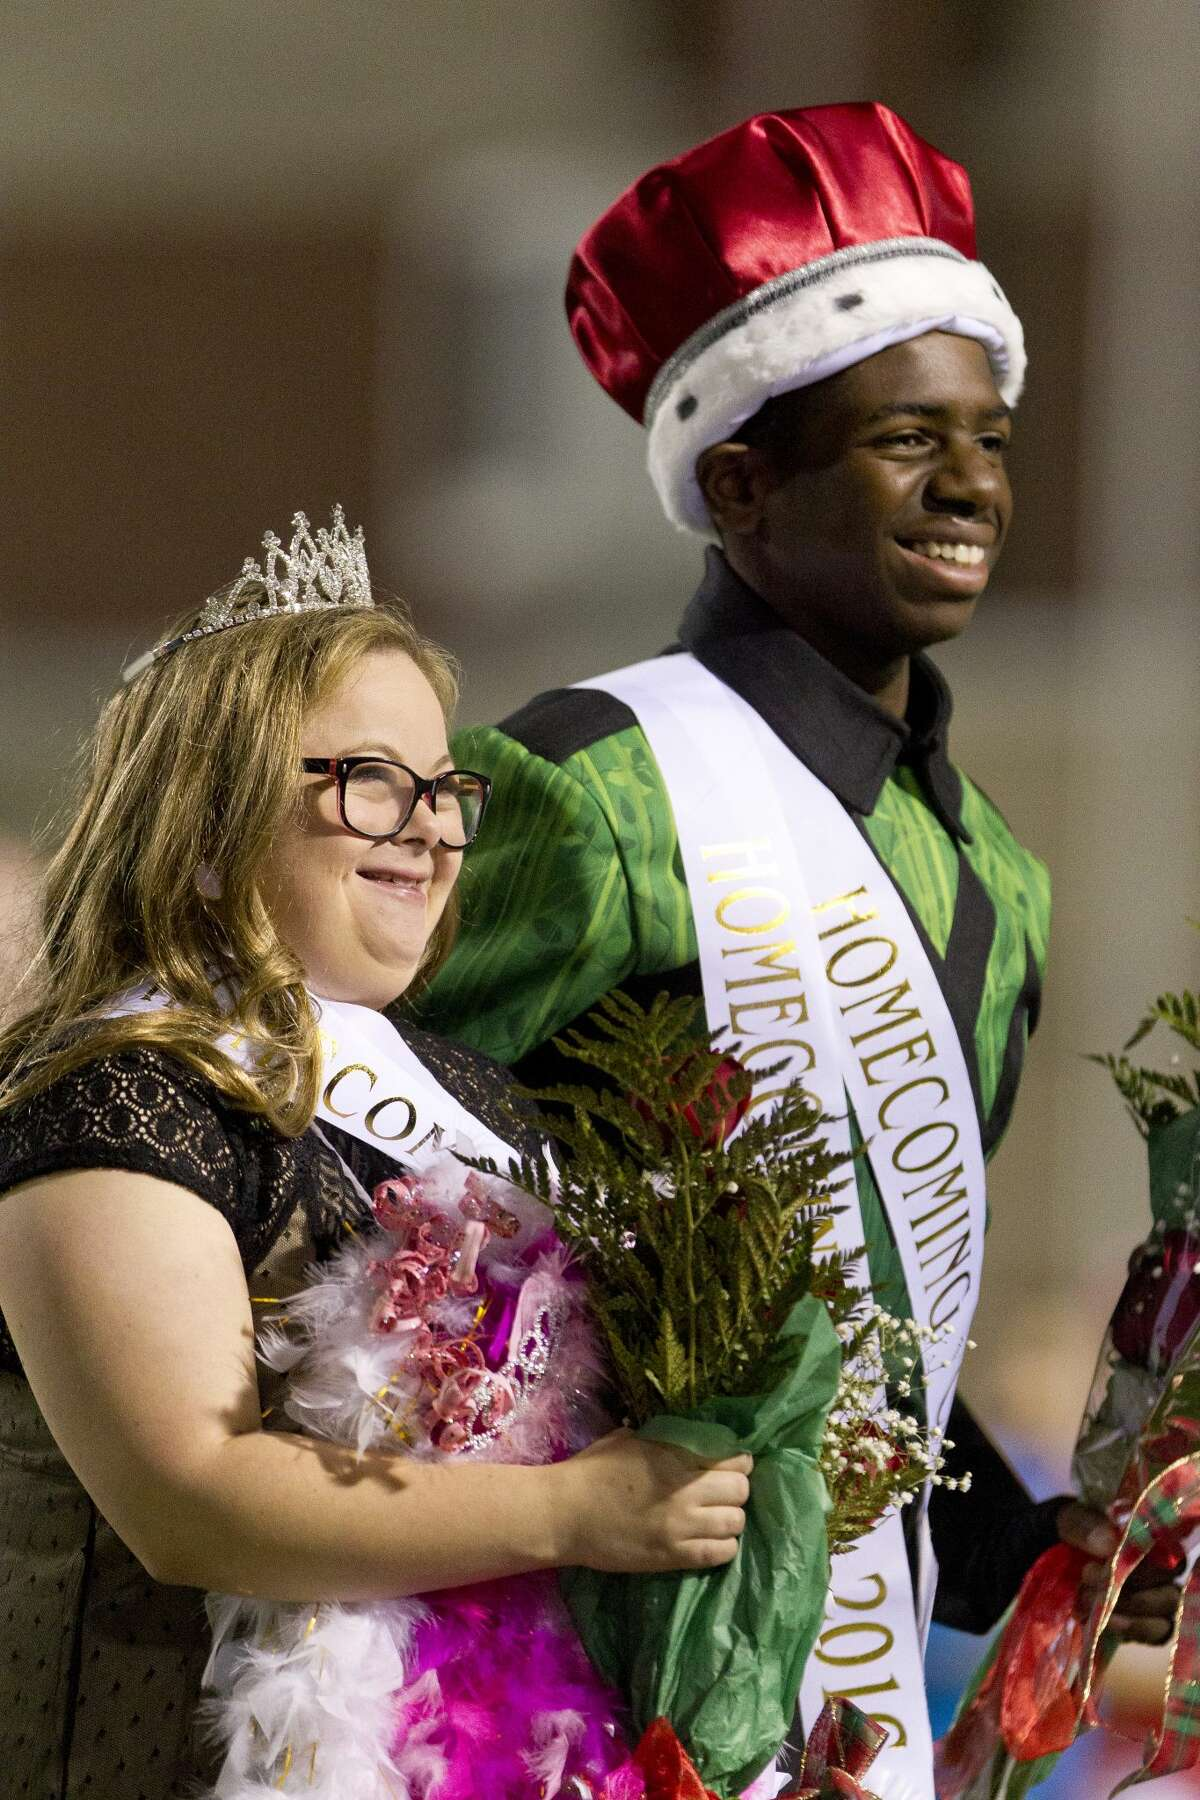 Click through the slideshow to see the Houston area's homecoming royalty for 2016. Homecoming queen Hanna Pasch, left, is seen with homecoming king Shabach Khoza during halftime of The Woodlands High School's football game against Montgomery Friday, Oct. 28, 2016.